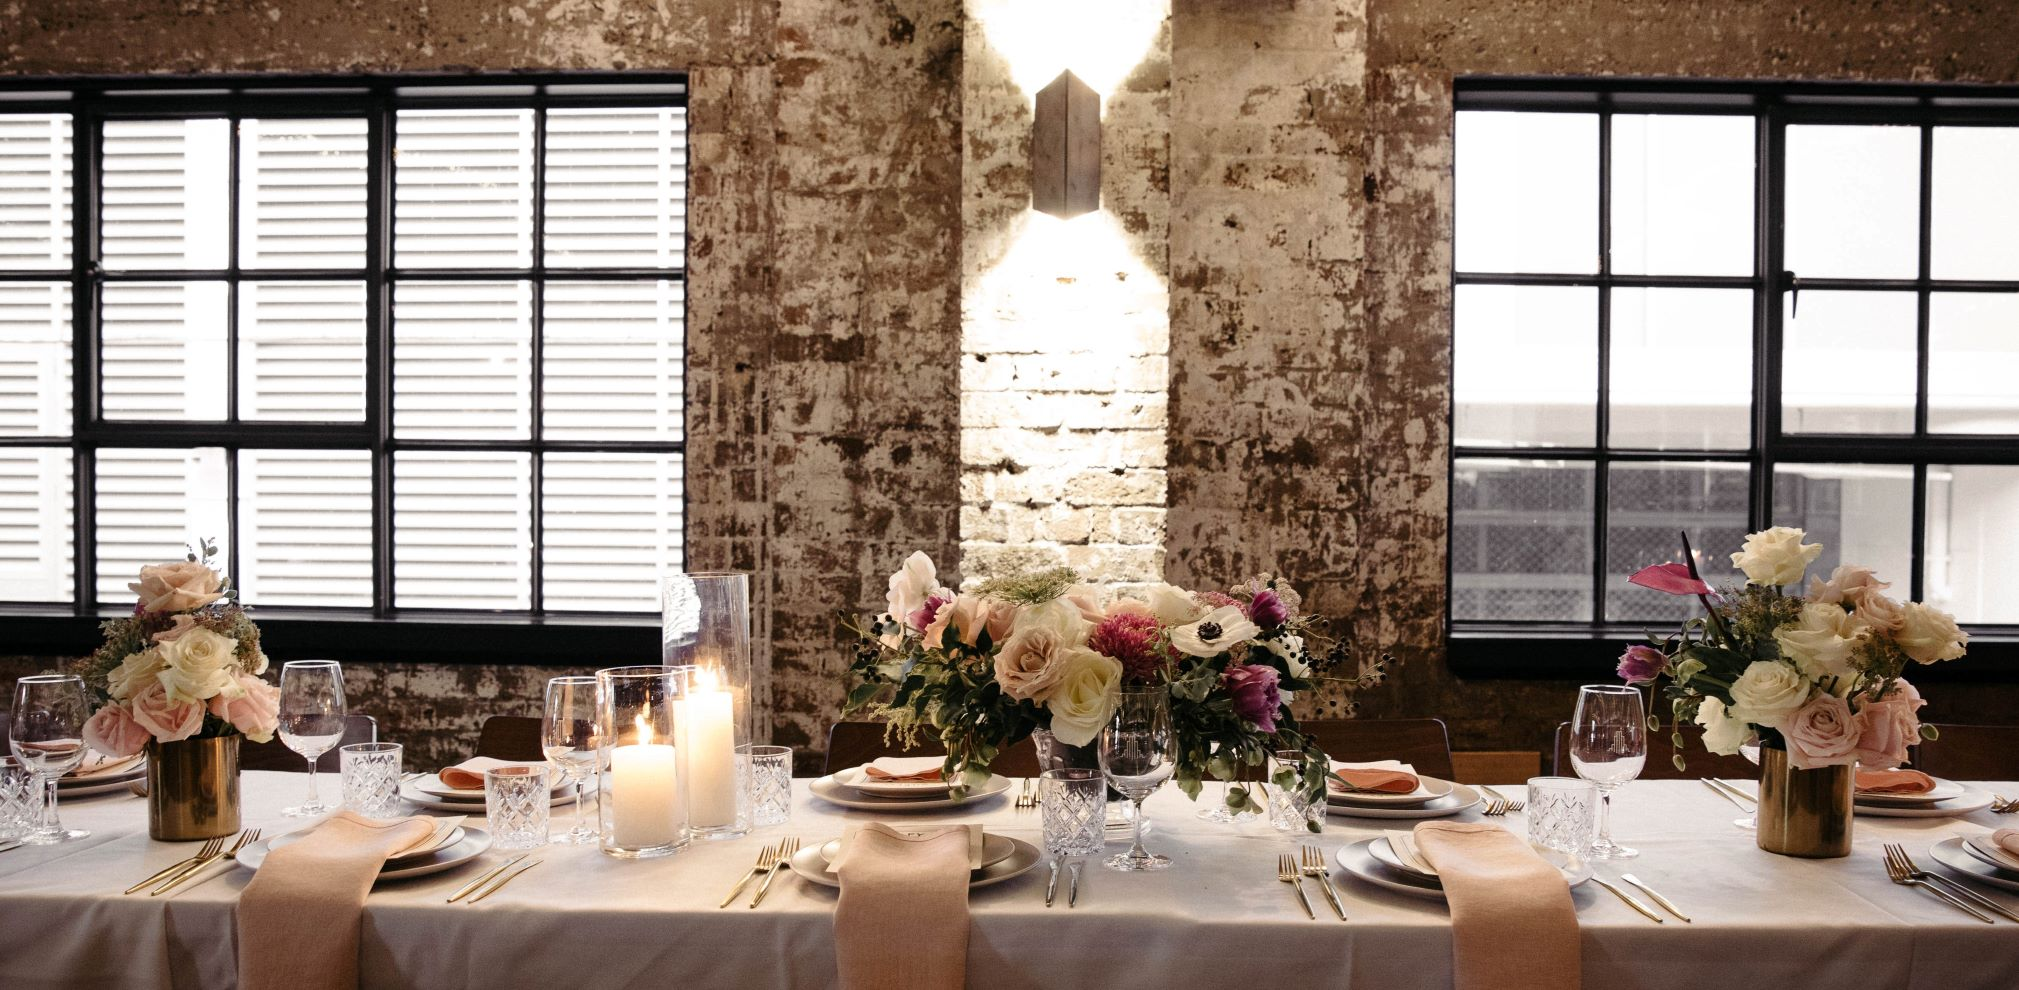 Wedding setting at Riley Street Garage styled by The Curated Life smaller.jpg